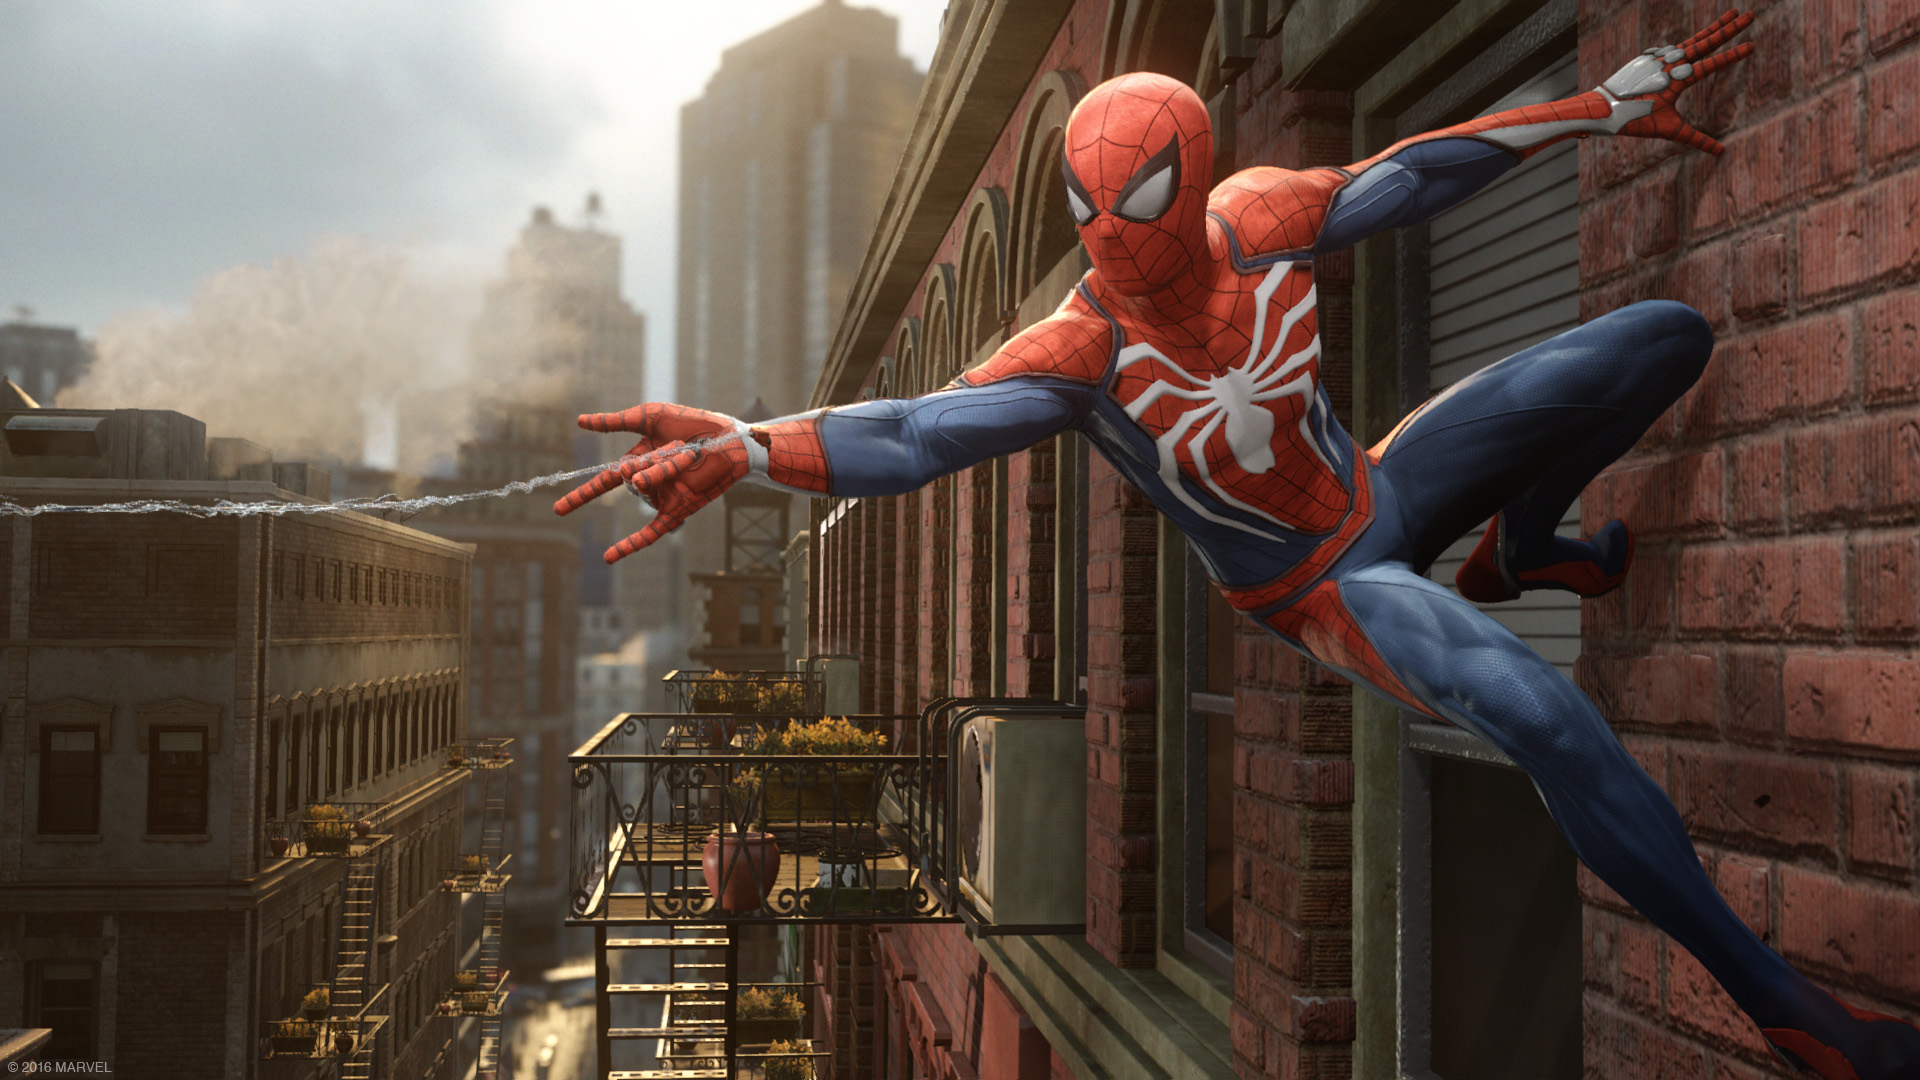 Spider Man Ps4 Wallpaper: 11 Spider-Man (PS4) HD Wallpapers